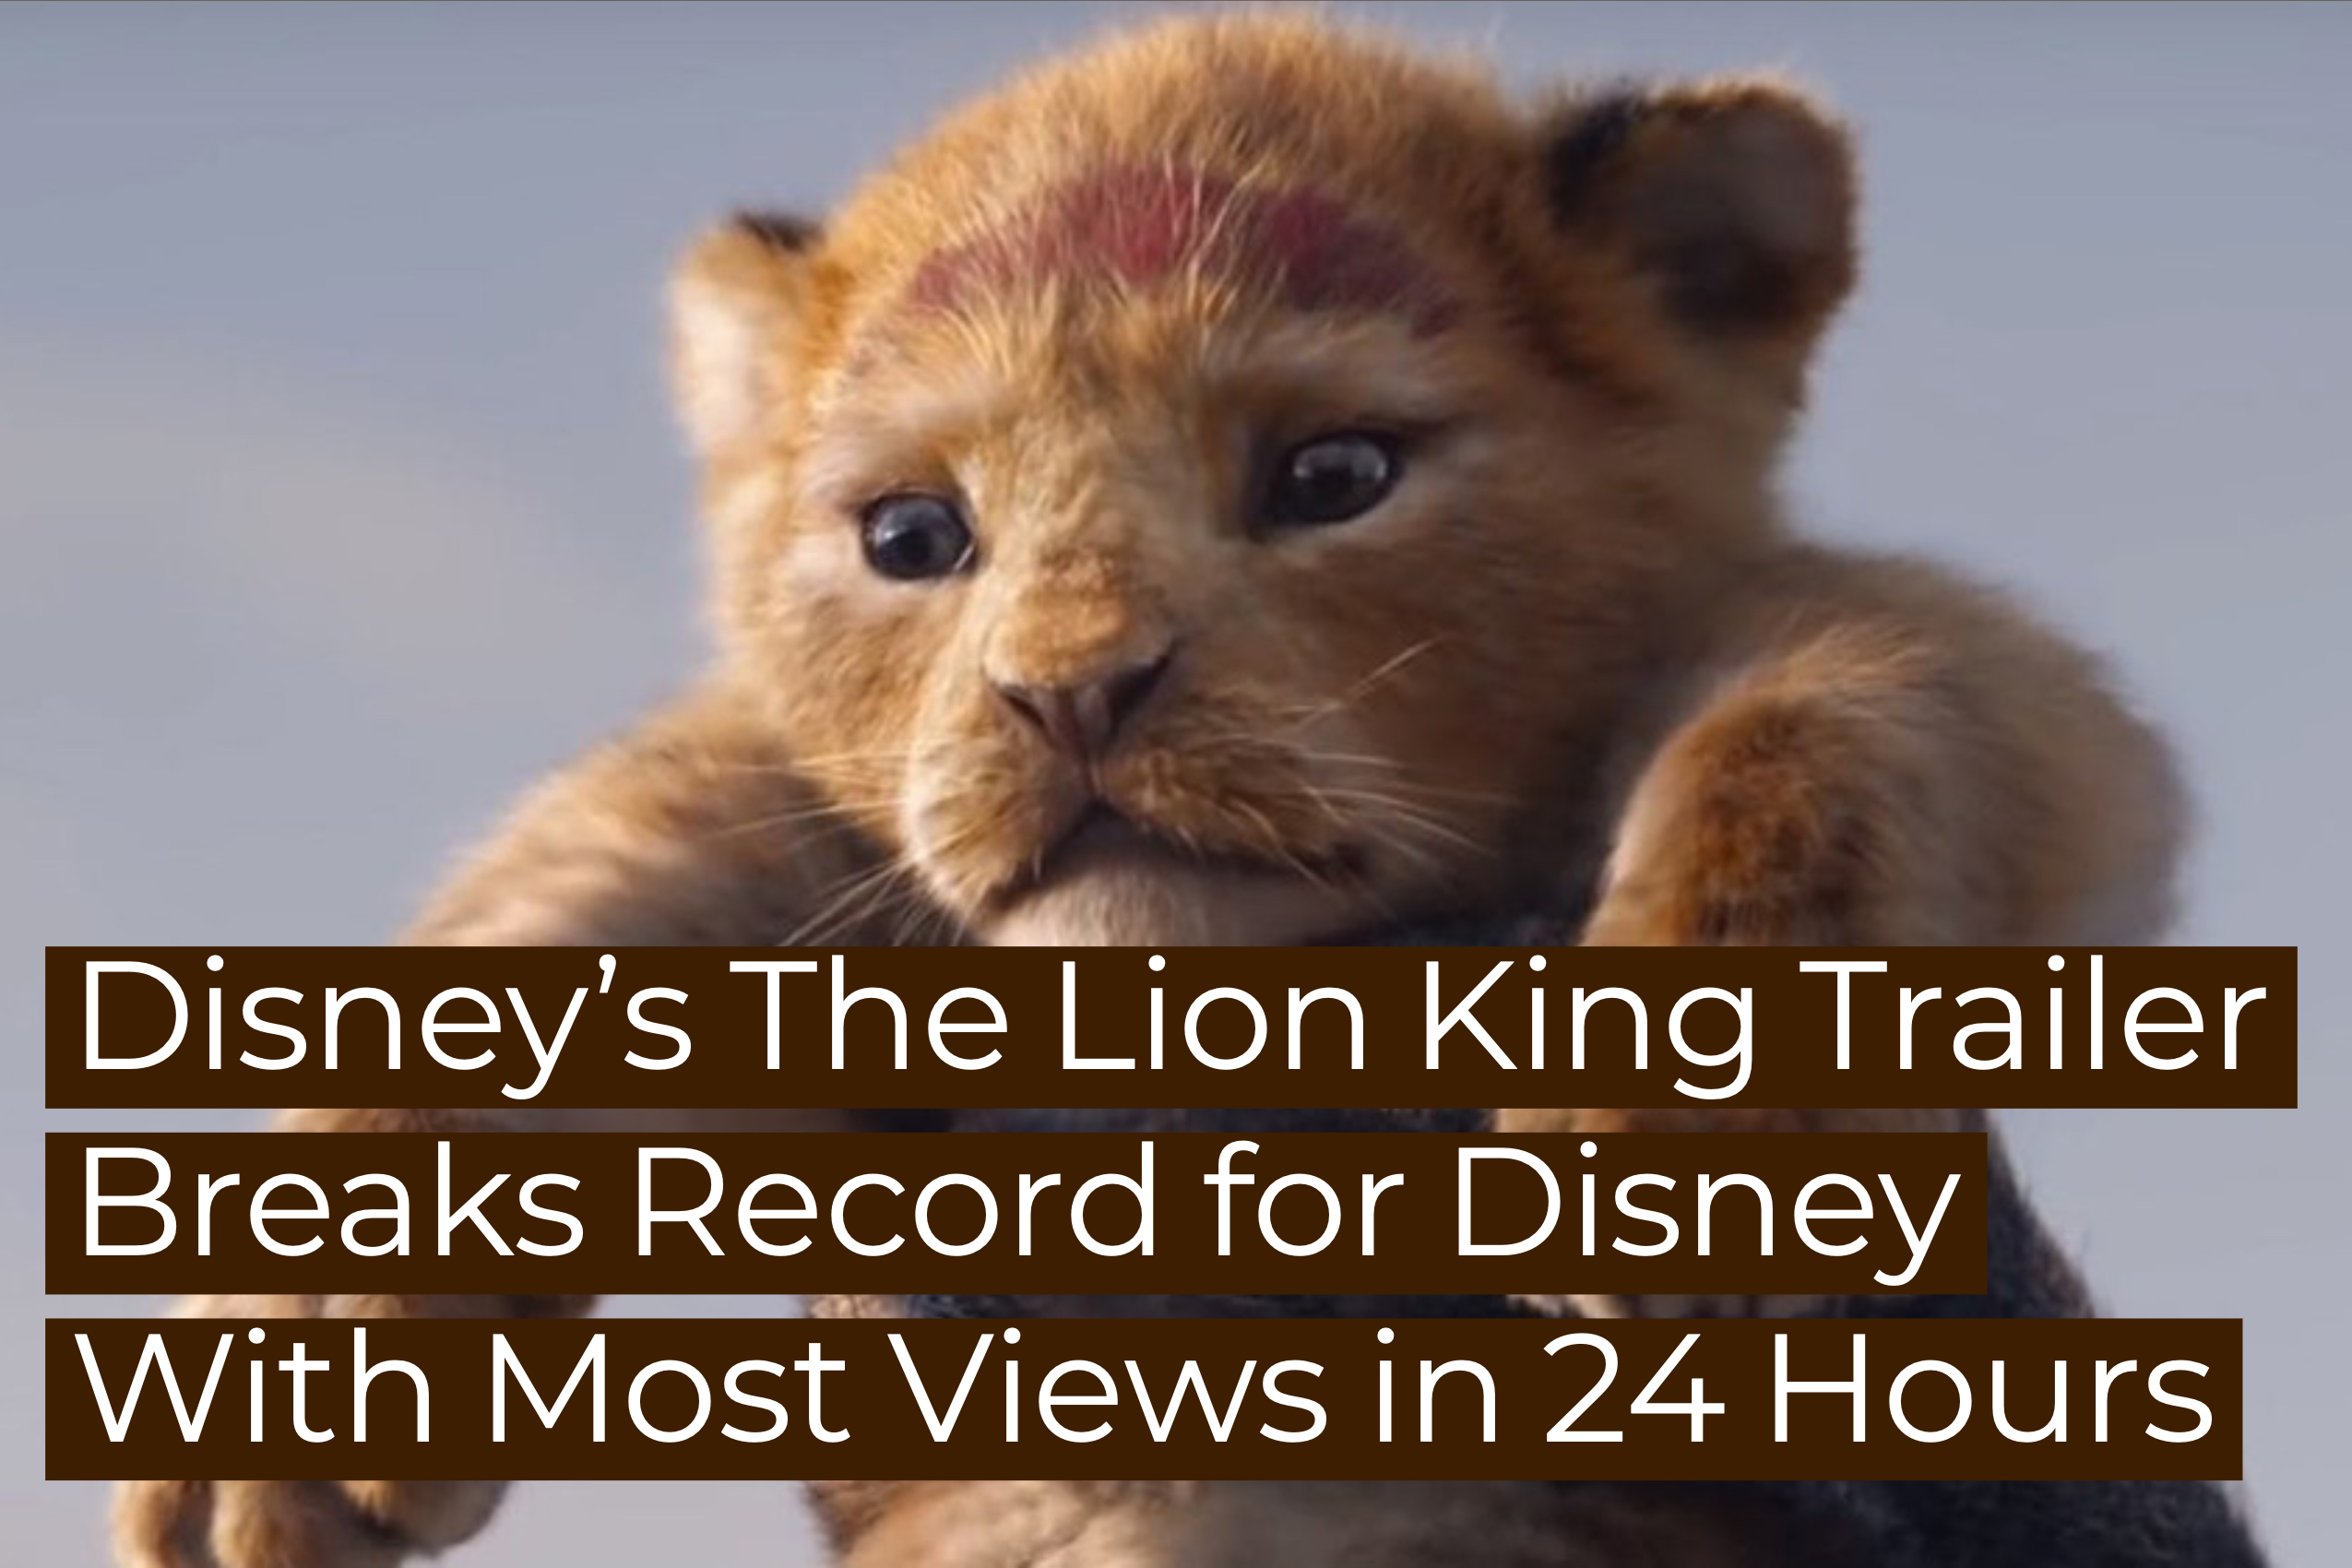 Disney's The Lion King Trailer Breaks Record for Disney With Most Views in 24 Hours